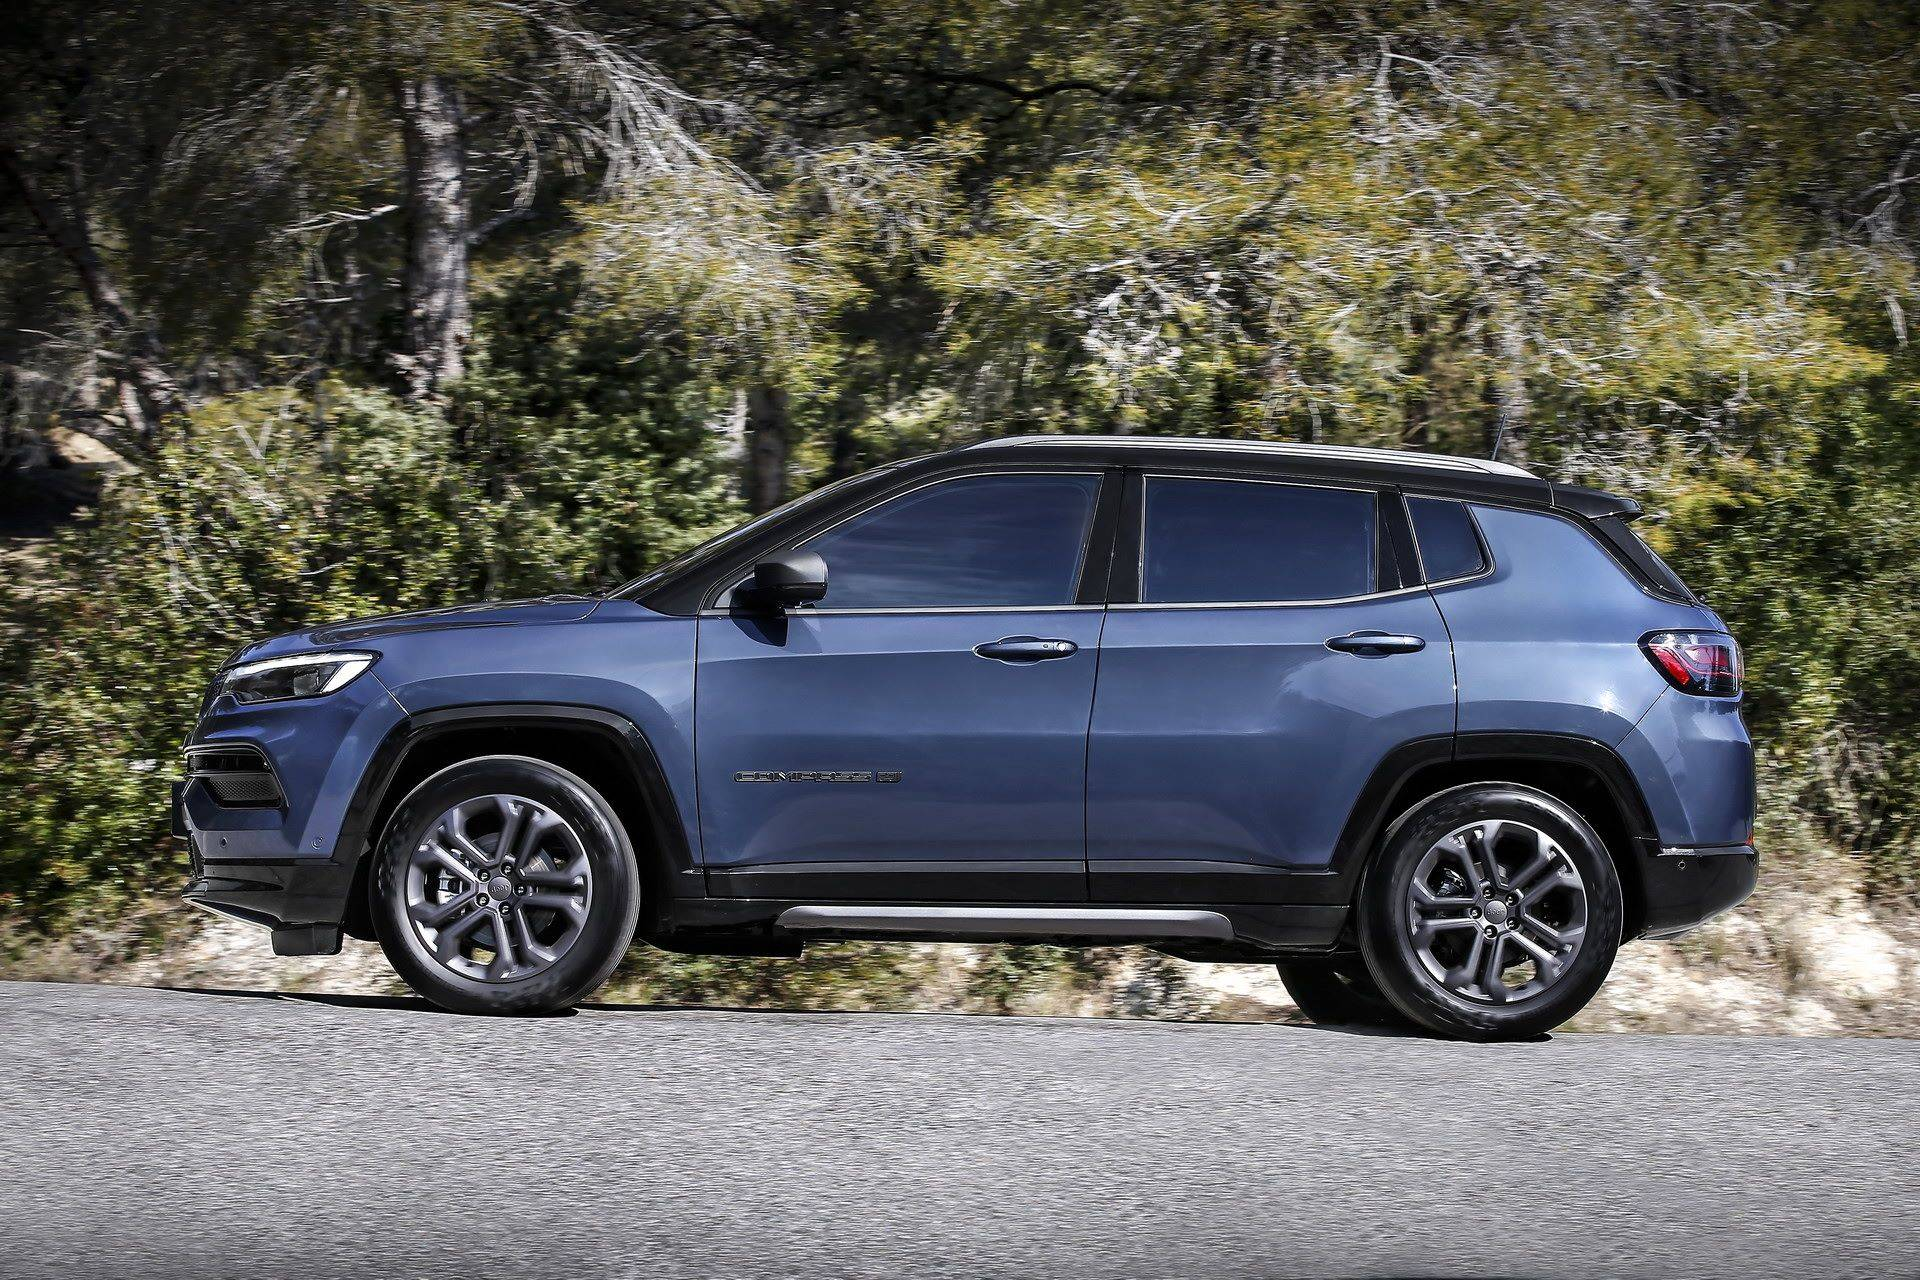 Jeep-Compass-facelift-2021-43